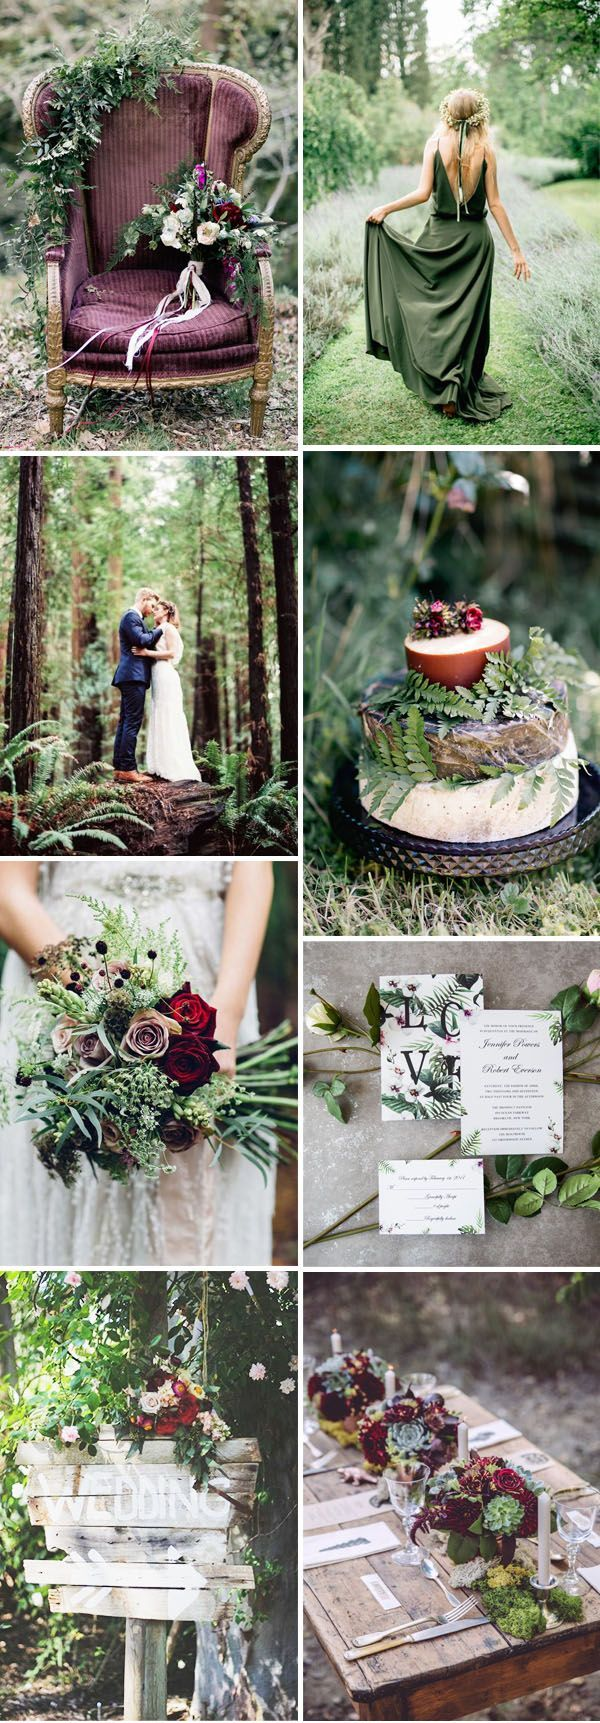 Wedding decorations using pallets october 2018 inexpensive photo wedding invitations rustic boho flowers EWI as